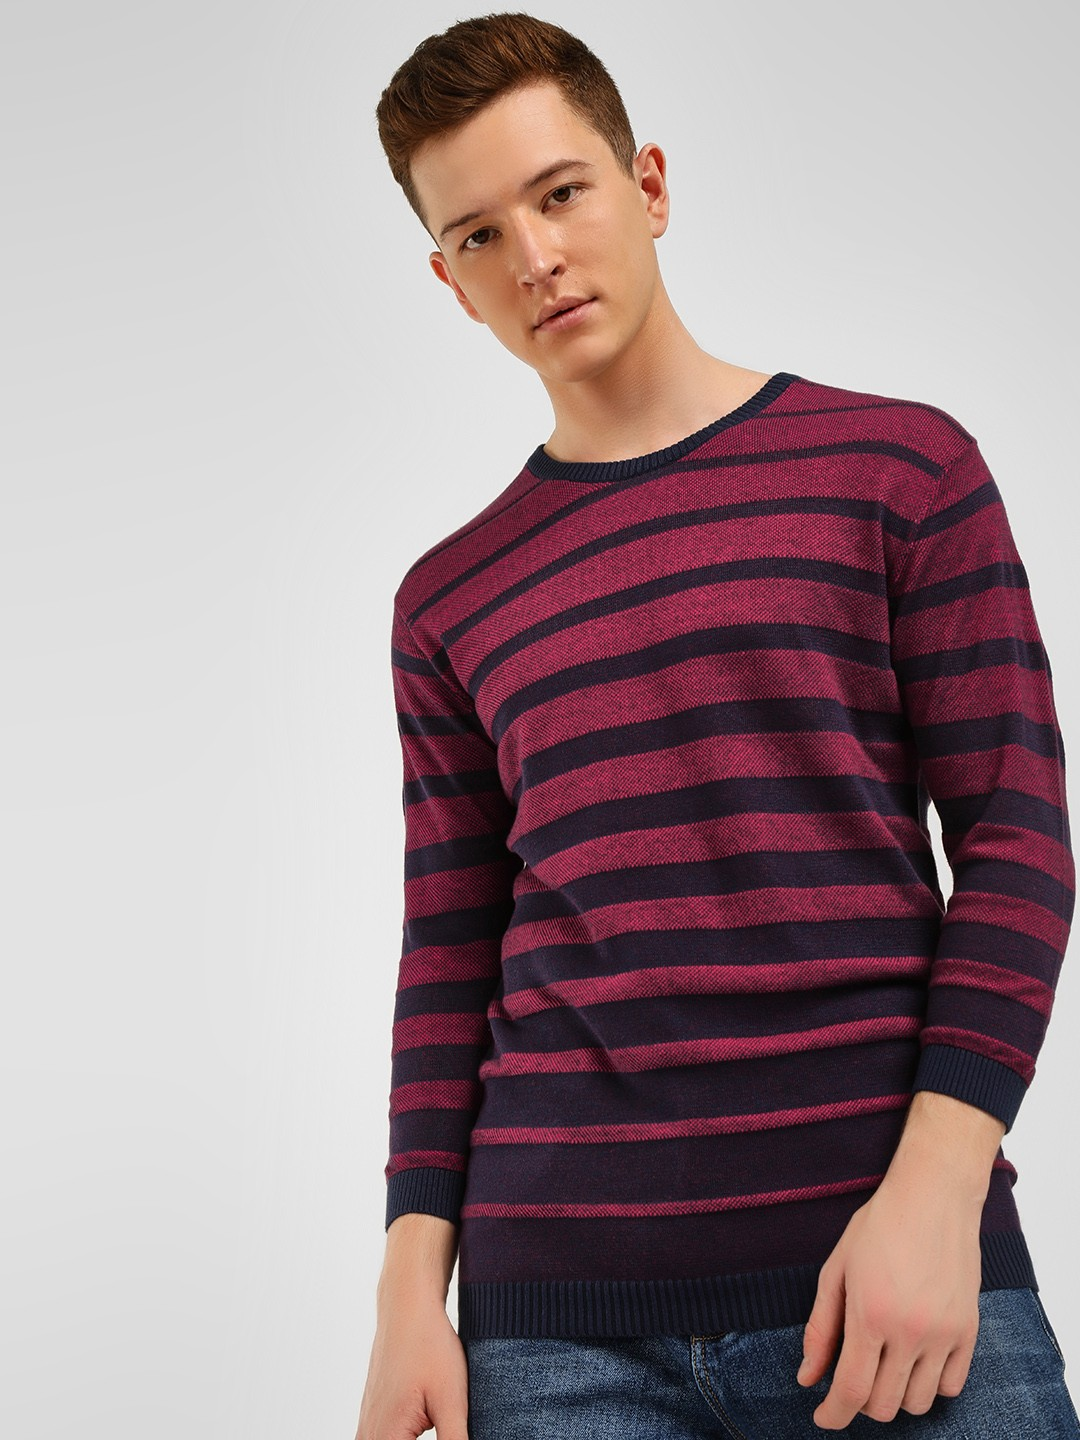 Akiva Multi Horizontal Striped Ribbed Pullover 1